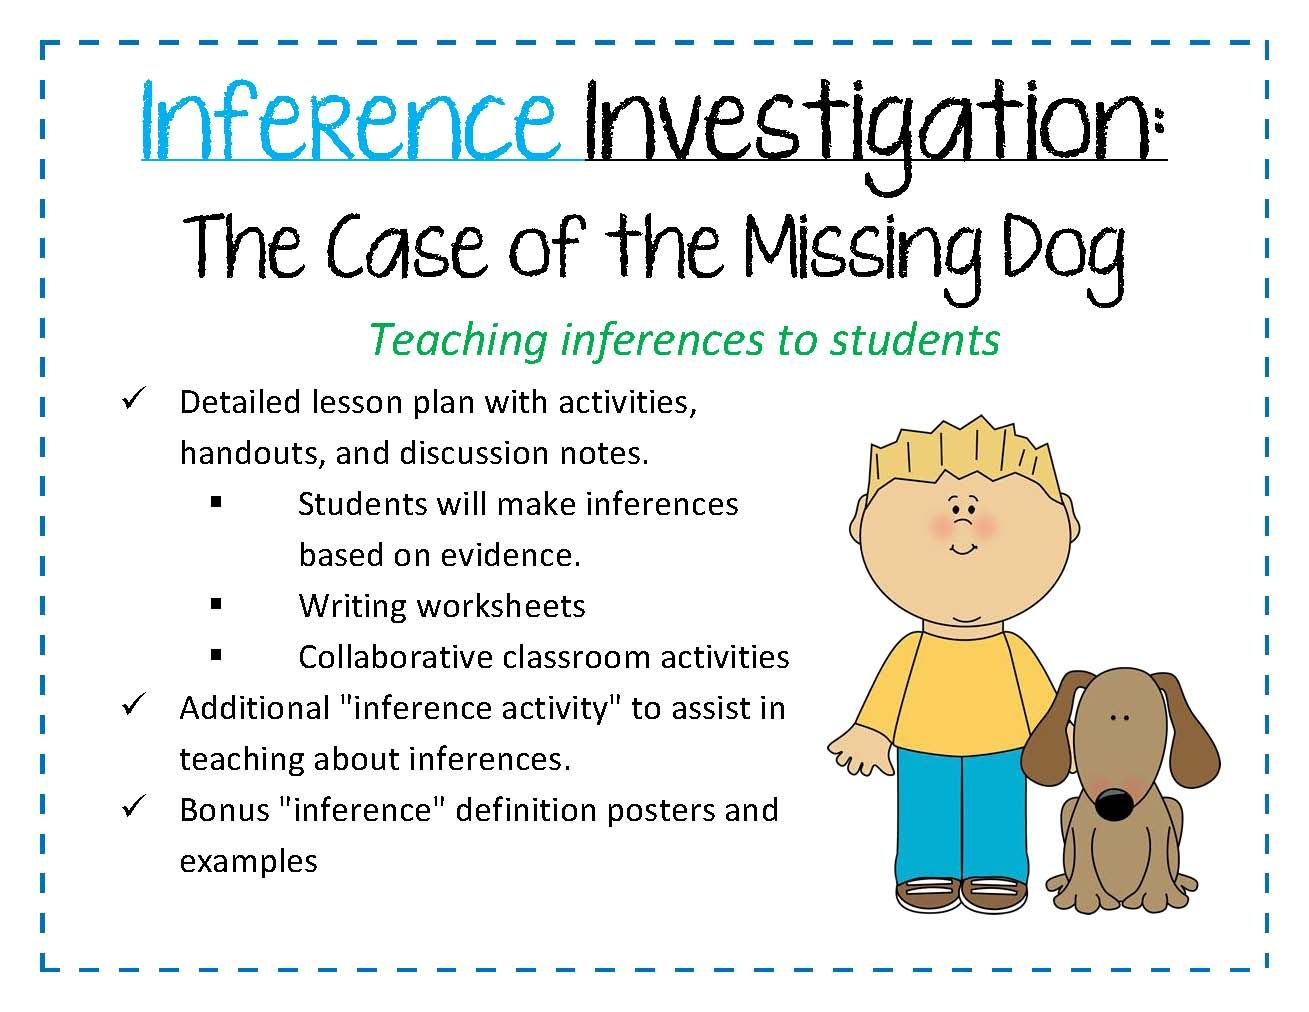 Workbooks inference worksheets high school : LESSON PLAN ON TEACHING INFERENCES Inference Investigation: The ...